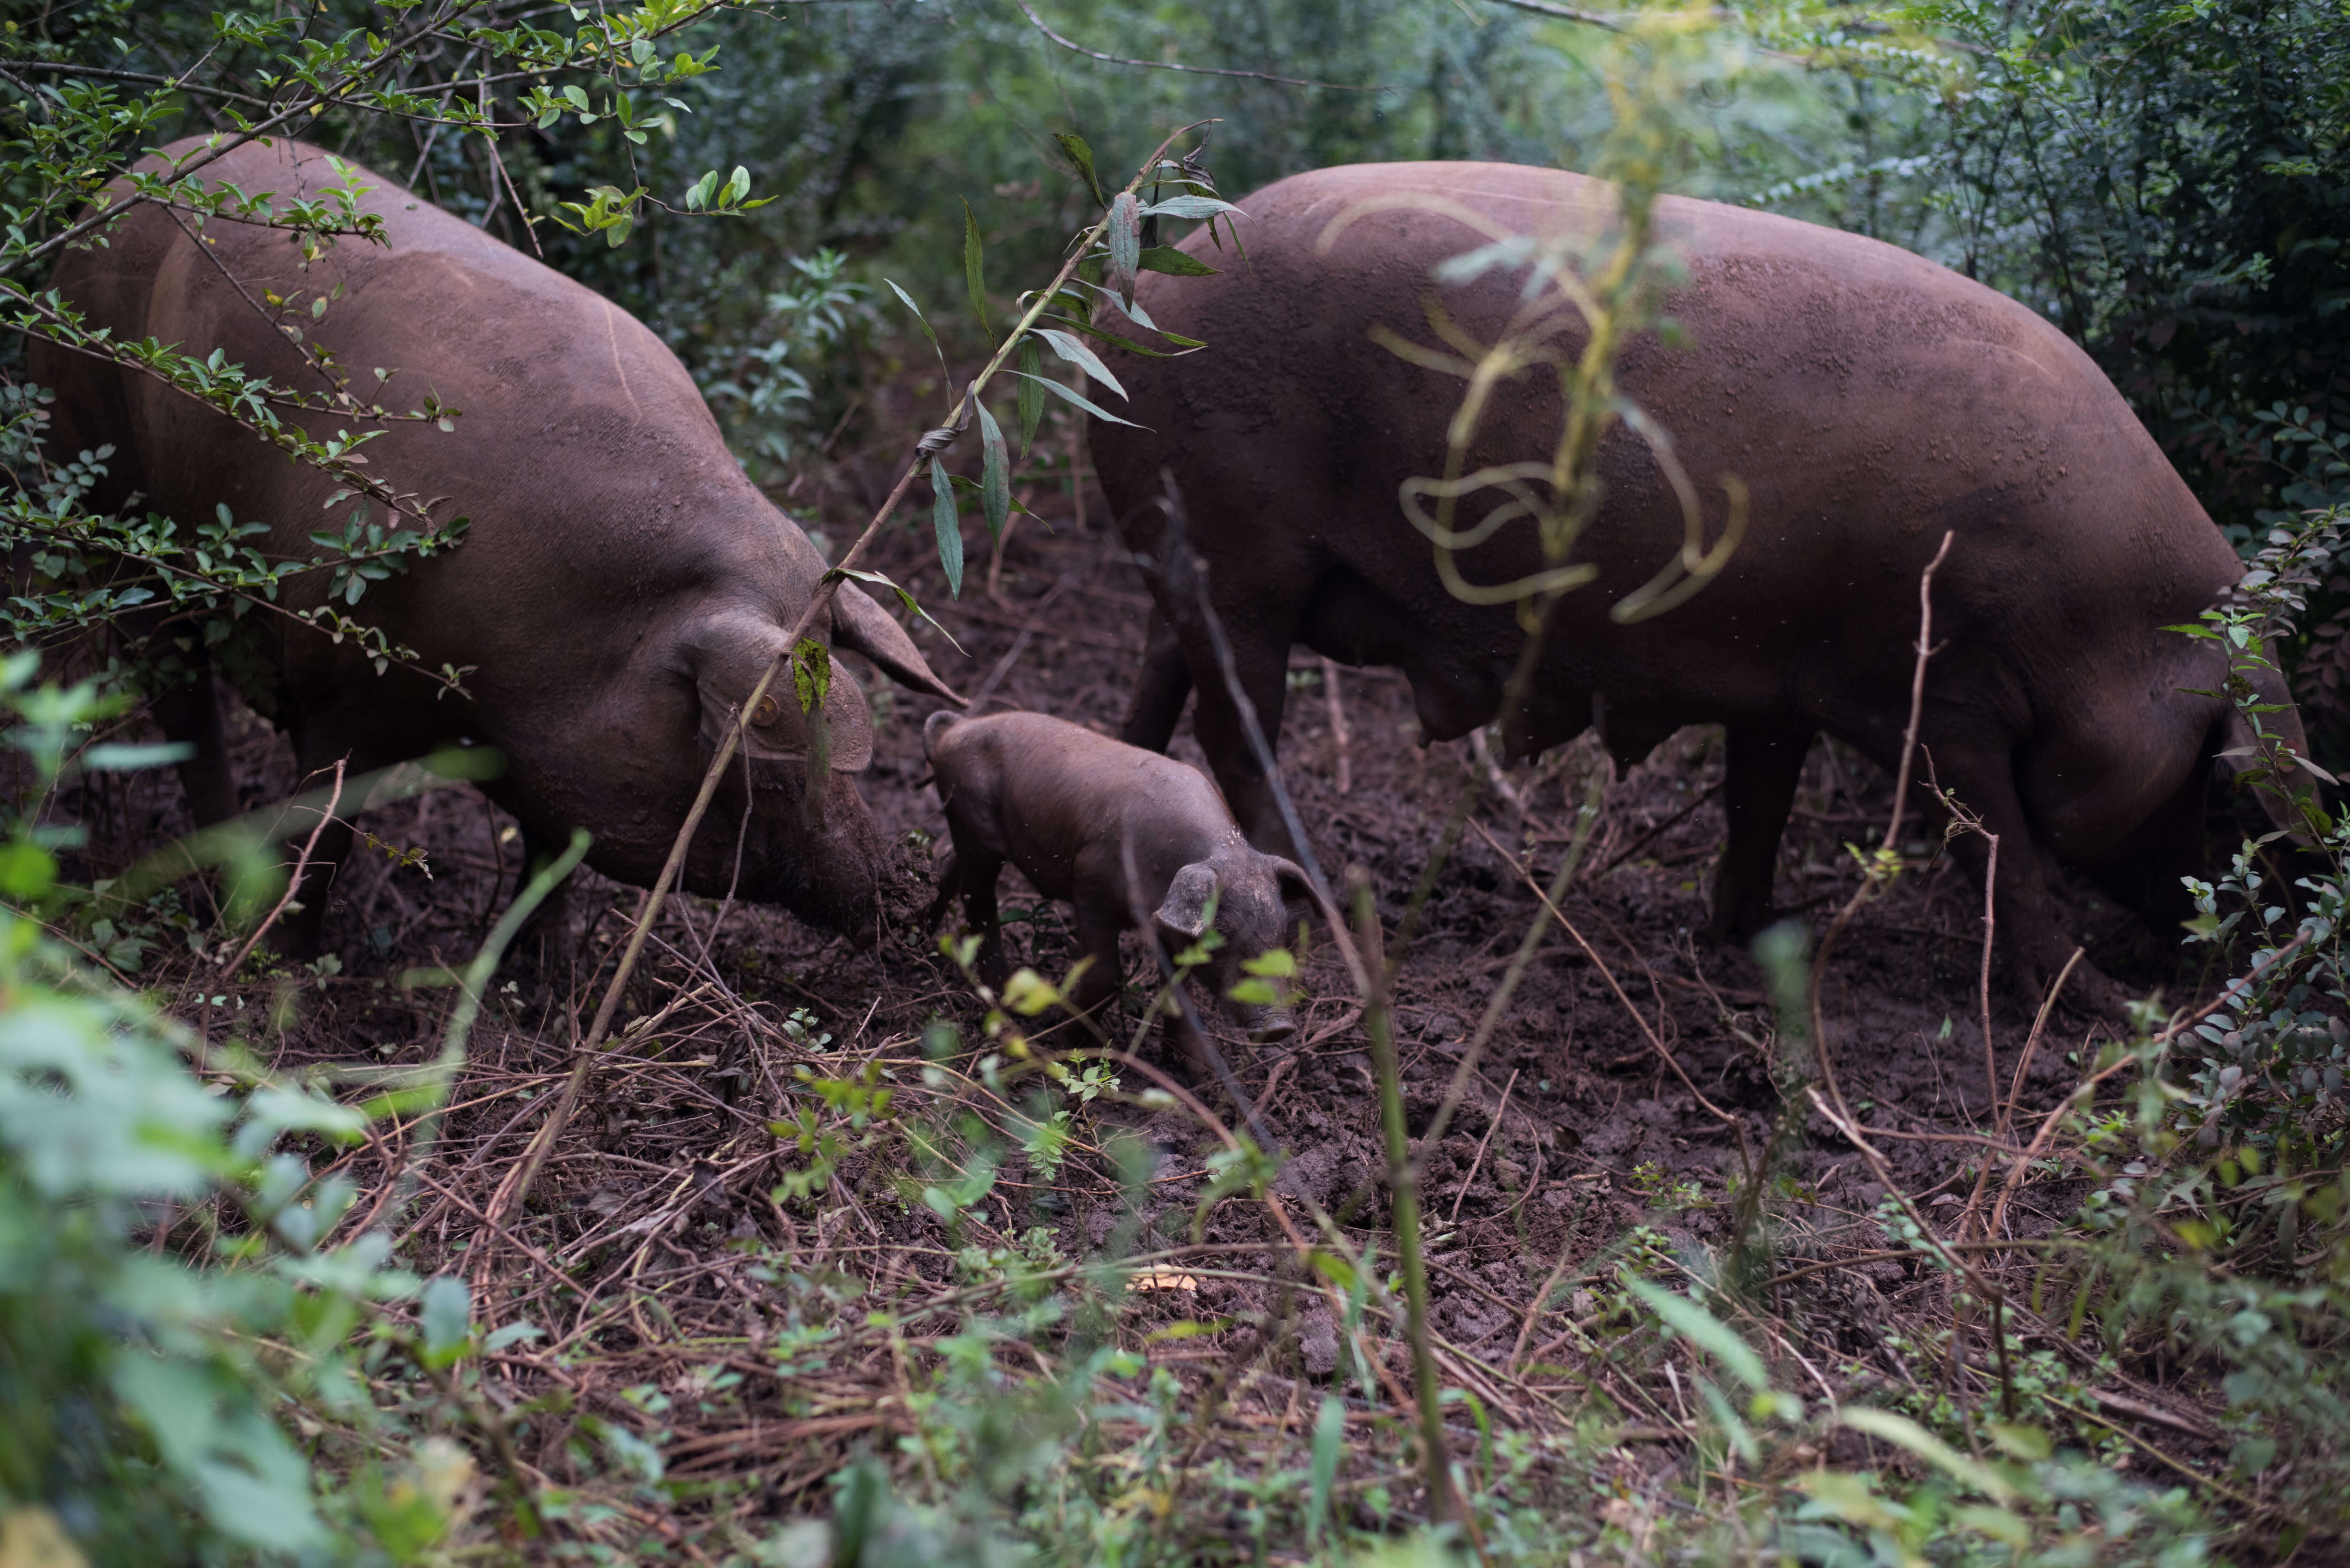 Pastured hogs in forest